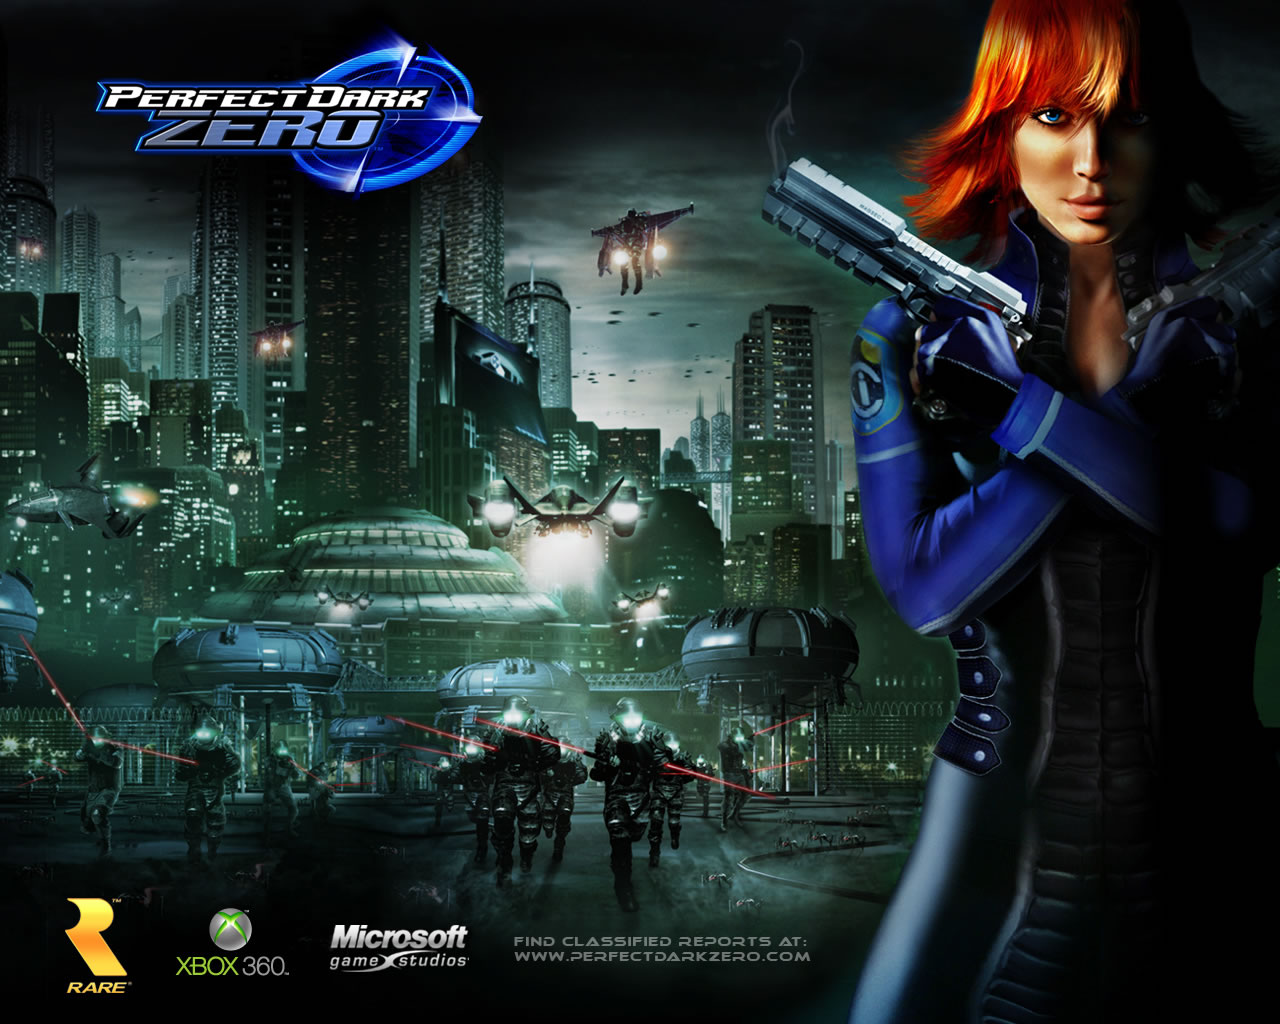 ajonvilma.com_images_perfect_dark_zero_xbox_game_1.jpg